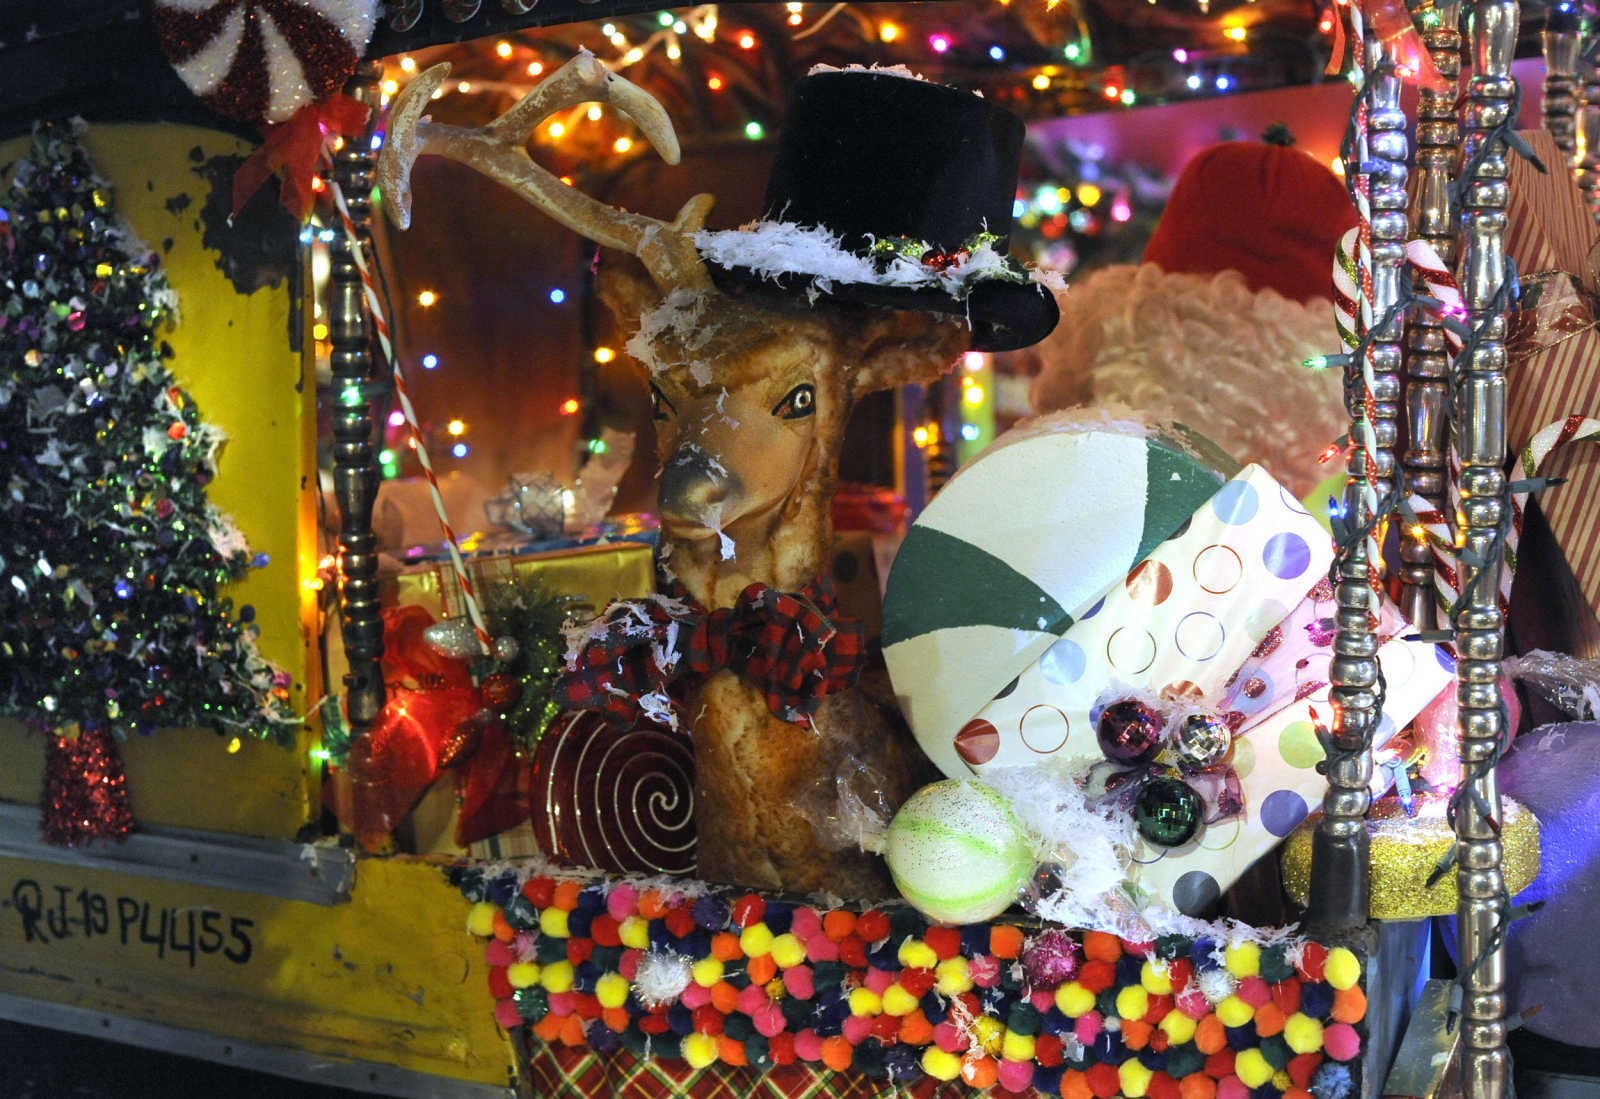 One Of Santau0027s Reindeer Is Depicted Thursday, Nov. 23, 2017 In The  Christmas Window Display At Hutsonu0027s Fine Furniture In Downtown Cape  Girardeau.